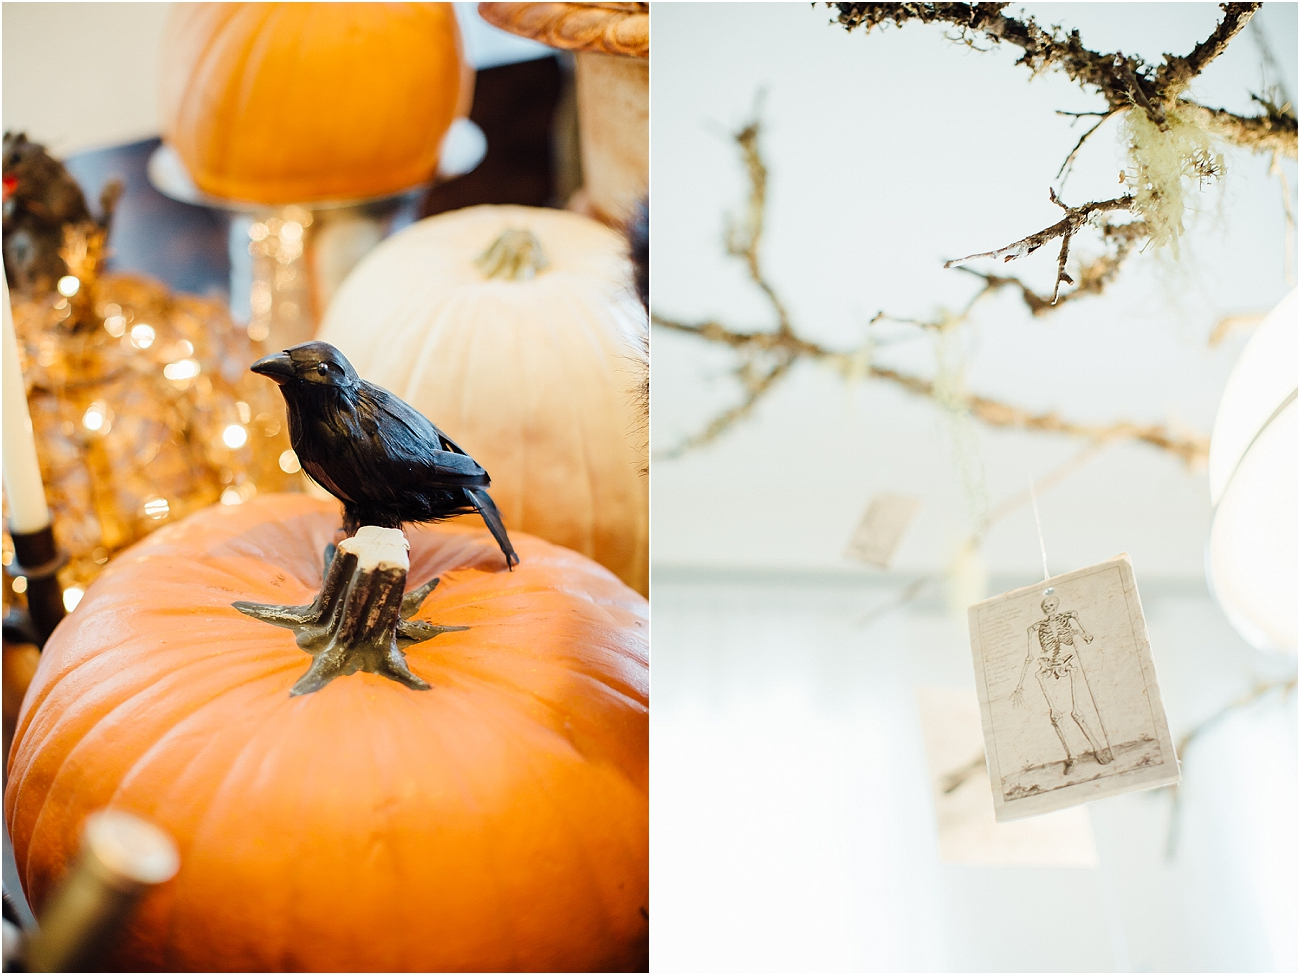 Indoor Halloween Fall Decor_06